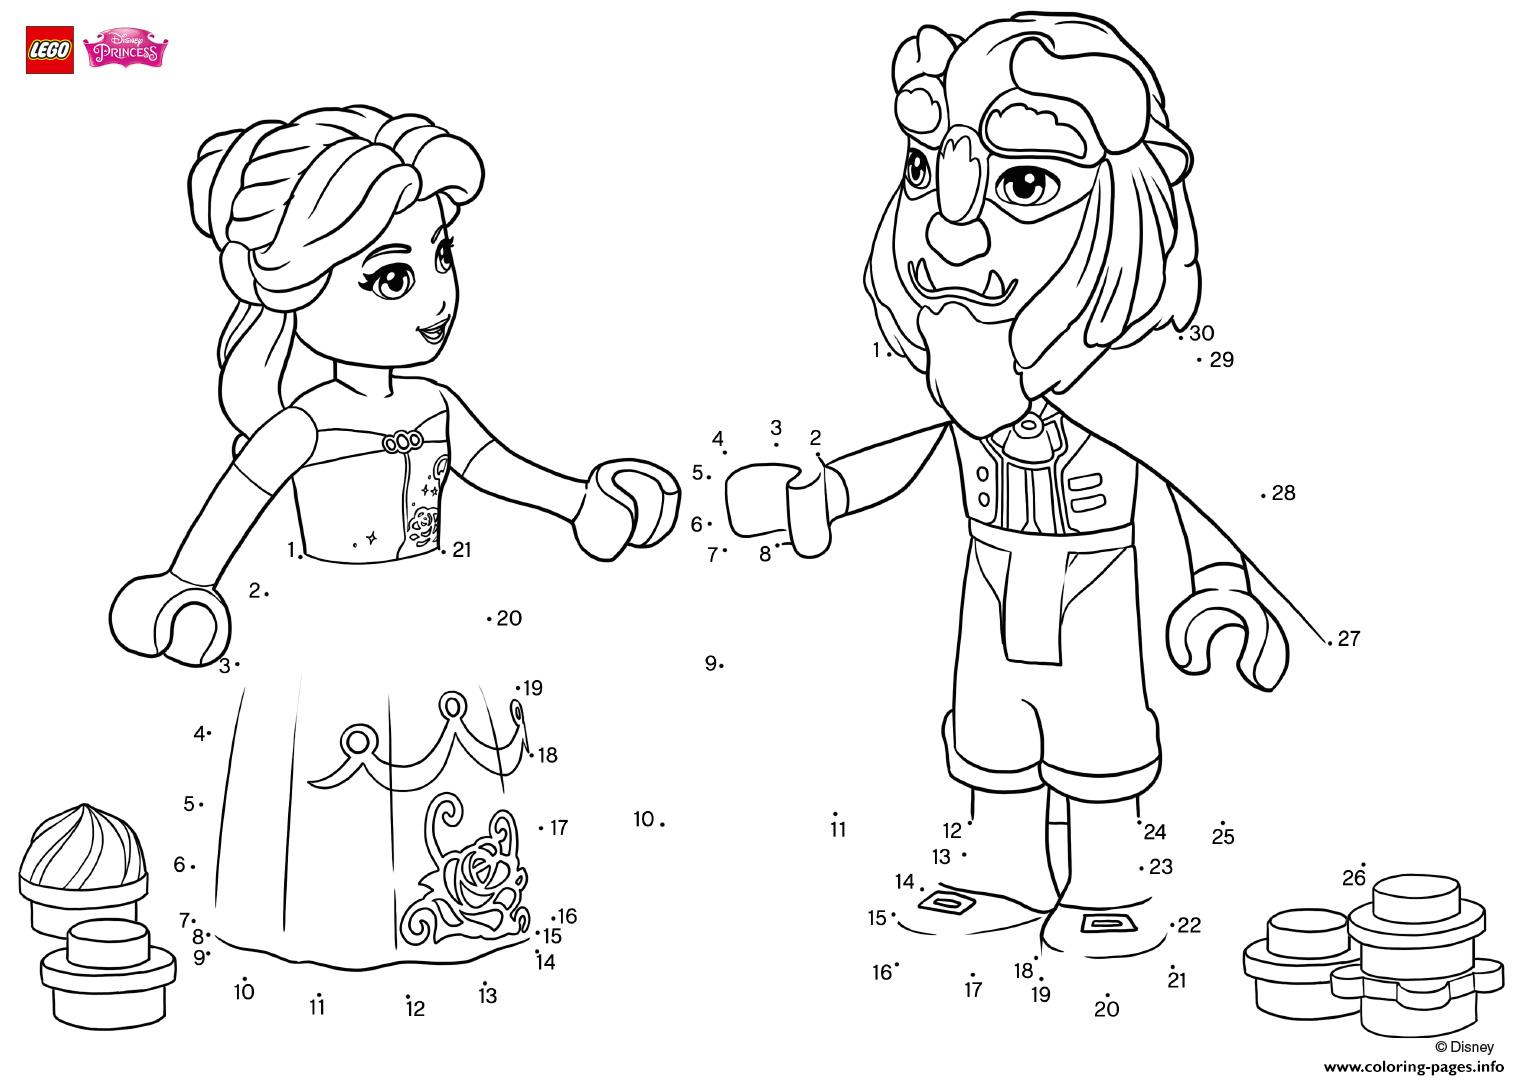 Have Fun Completing The Drawing Of Beauty And Beast Lego Disney Coloring Pages Printable